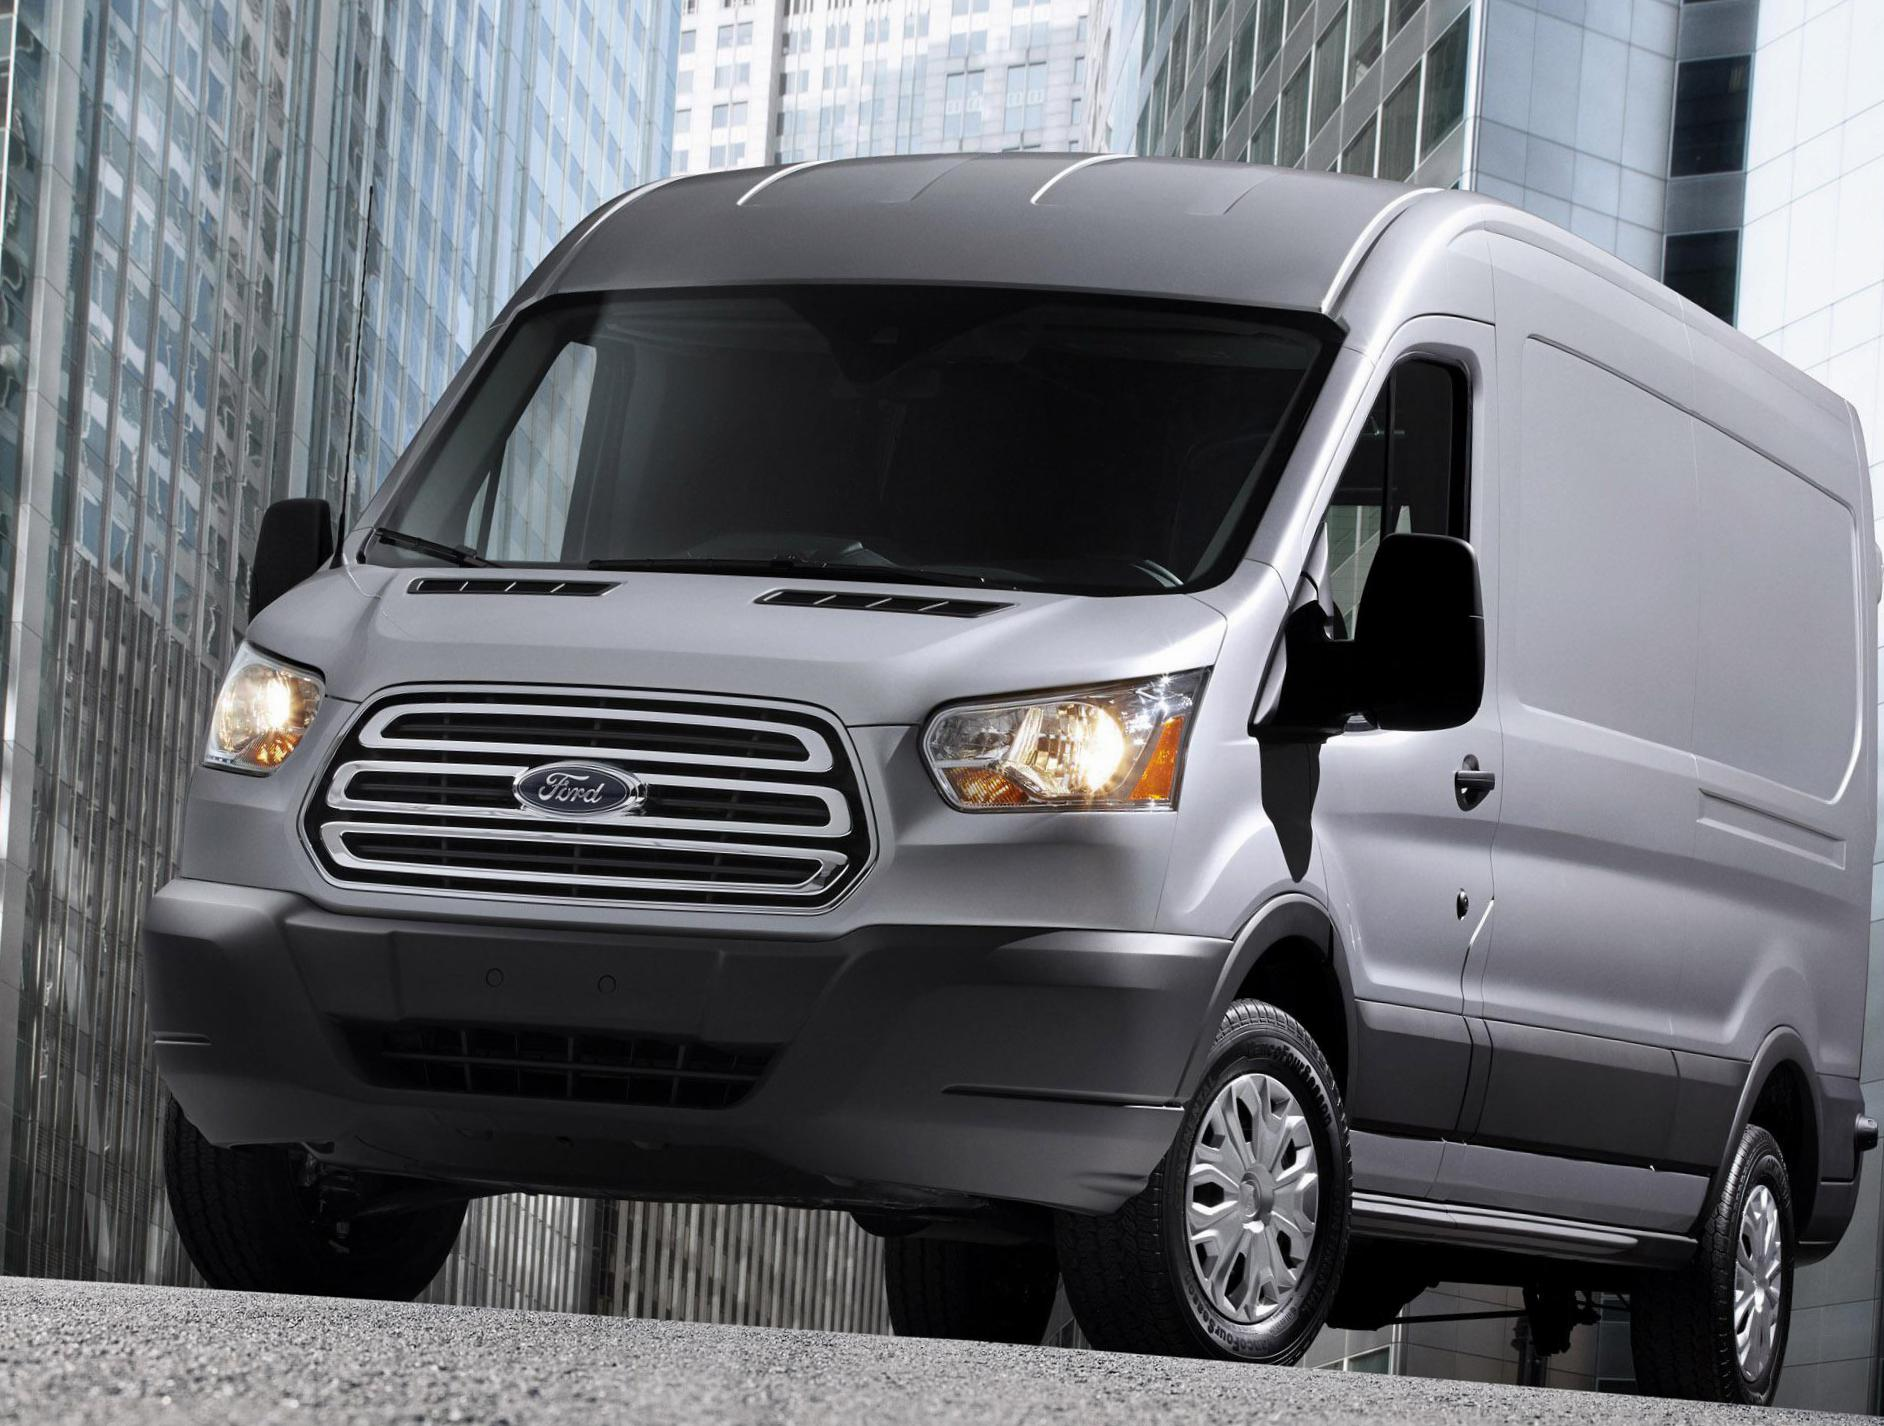 Transit Ford lease 2012